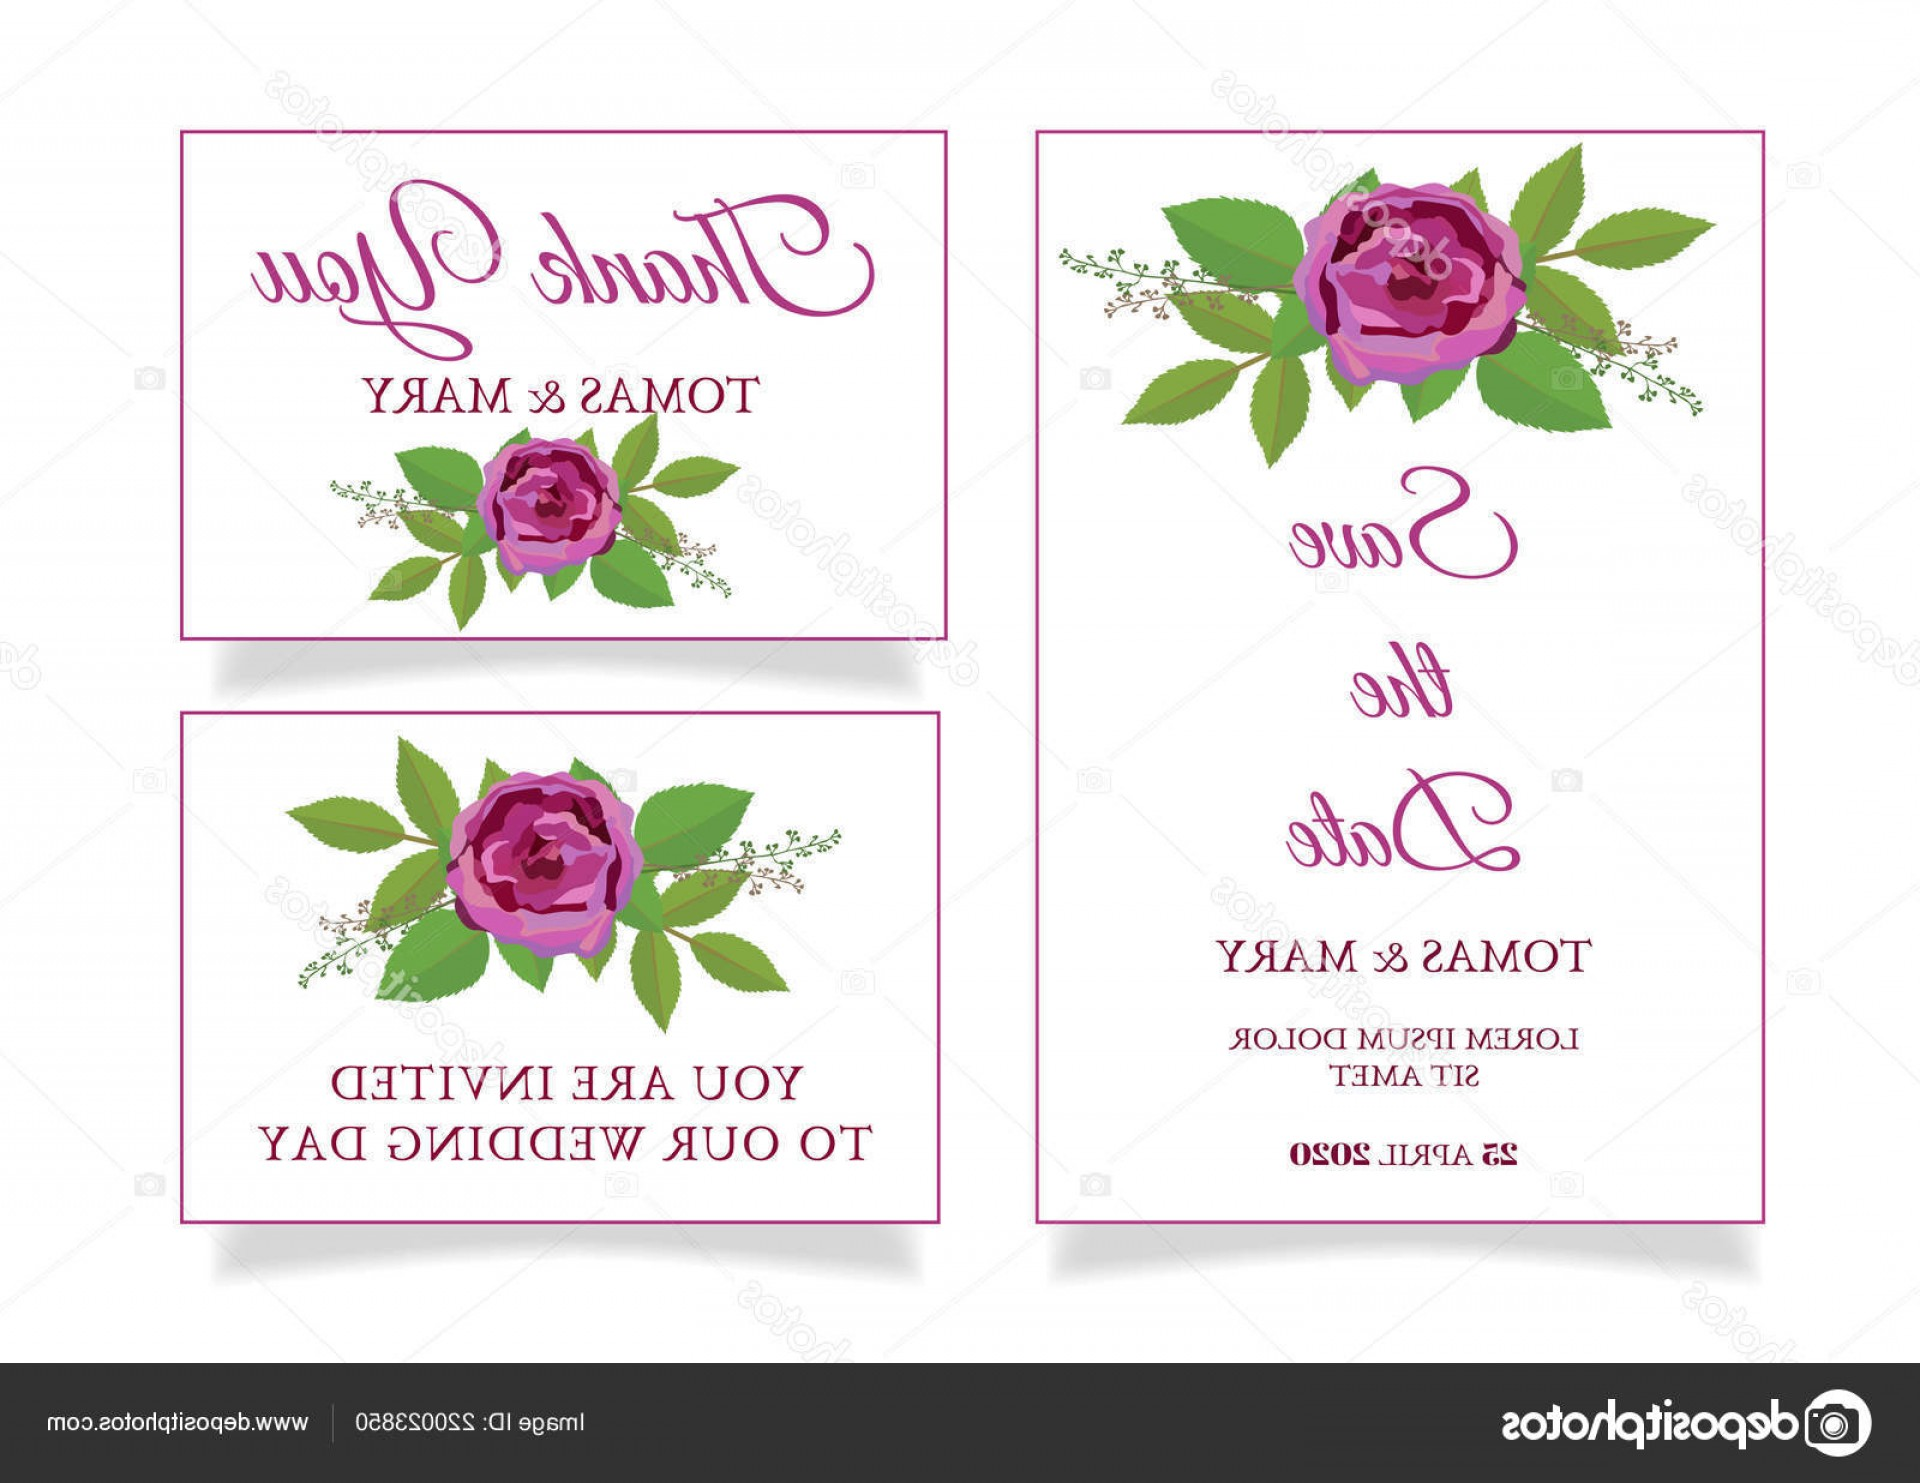 Rustic Wedding Invitation Vector: Stock Illustration Rustic Wedding Invitation Template Rose